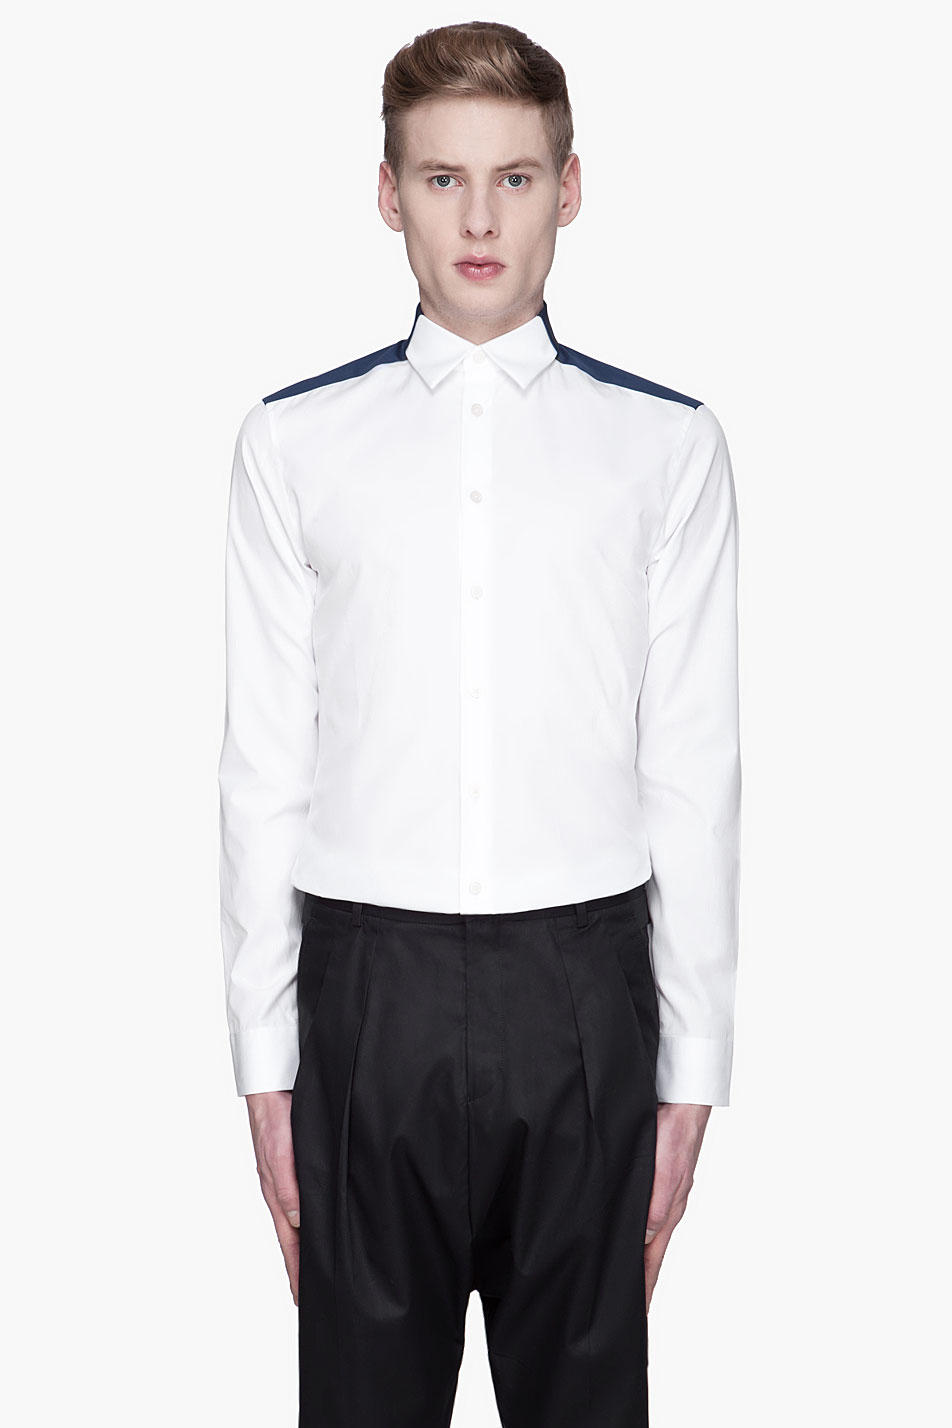 Givenchy Contrast Dress Shirt In White For Men Lyst